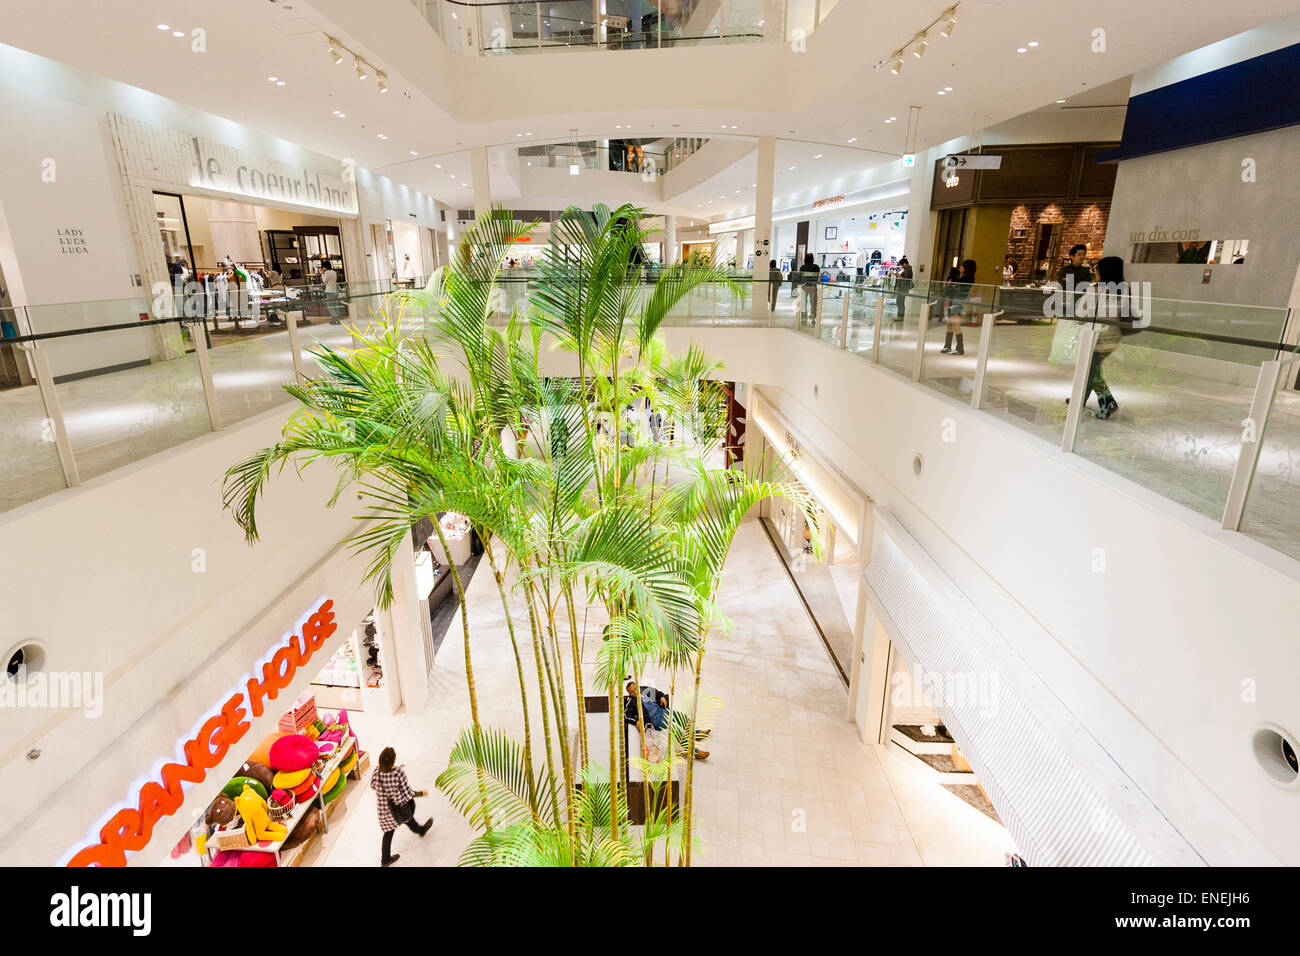 The Gardens Mall Stock Photos & The Gardens Mall Stock Images - Alamy